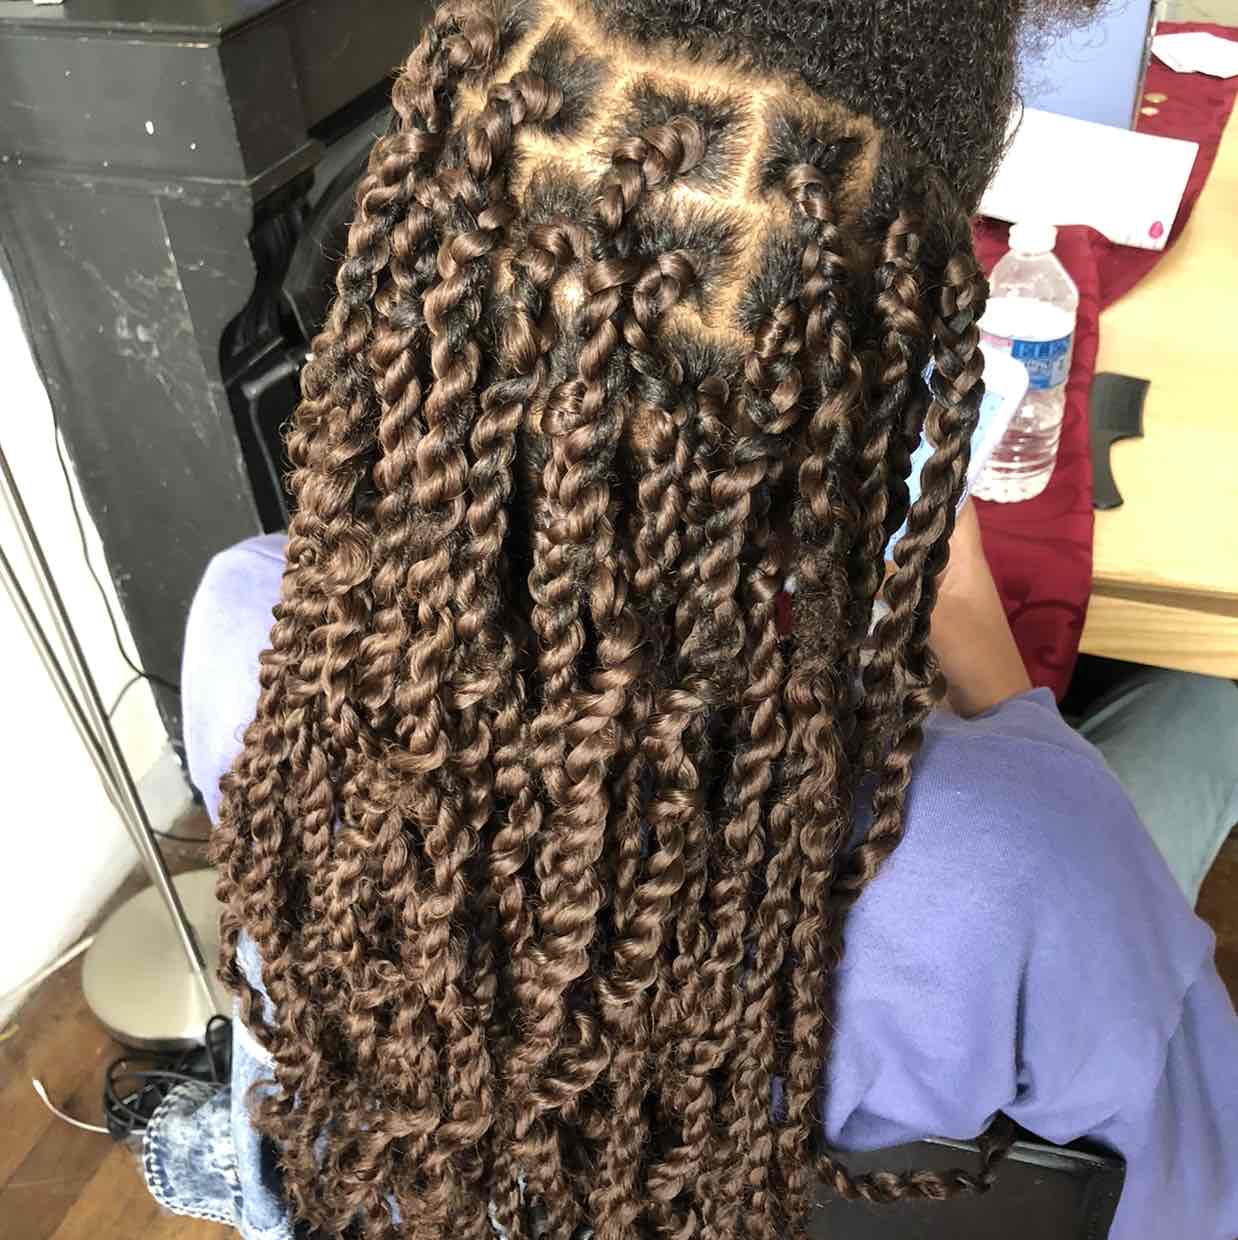 salon de coiffure afro tresse tresses box braids crochet braids vanilles tissages paris 75 77 78 91 92 93 94 95 SCRZEUPS